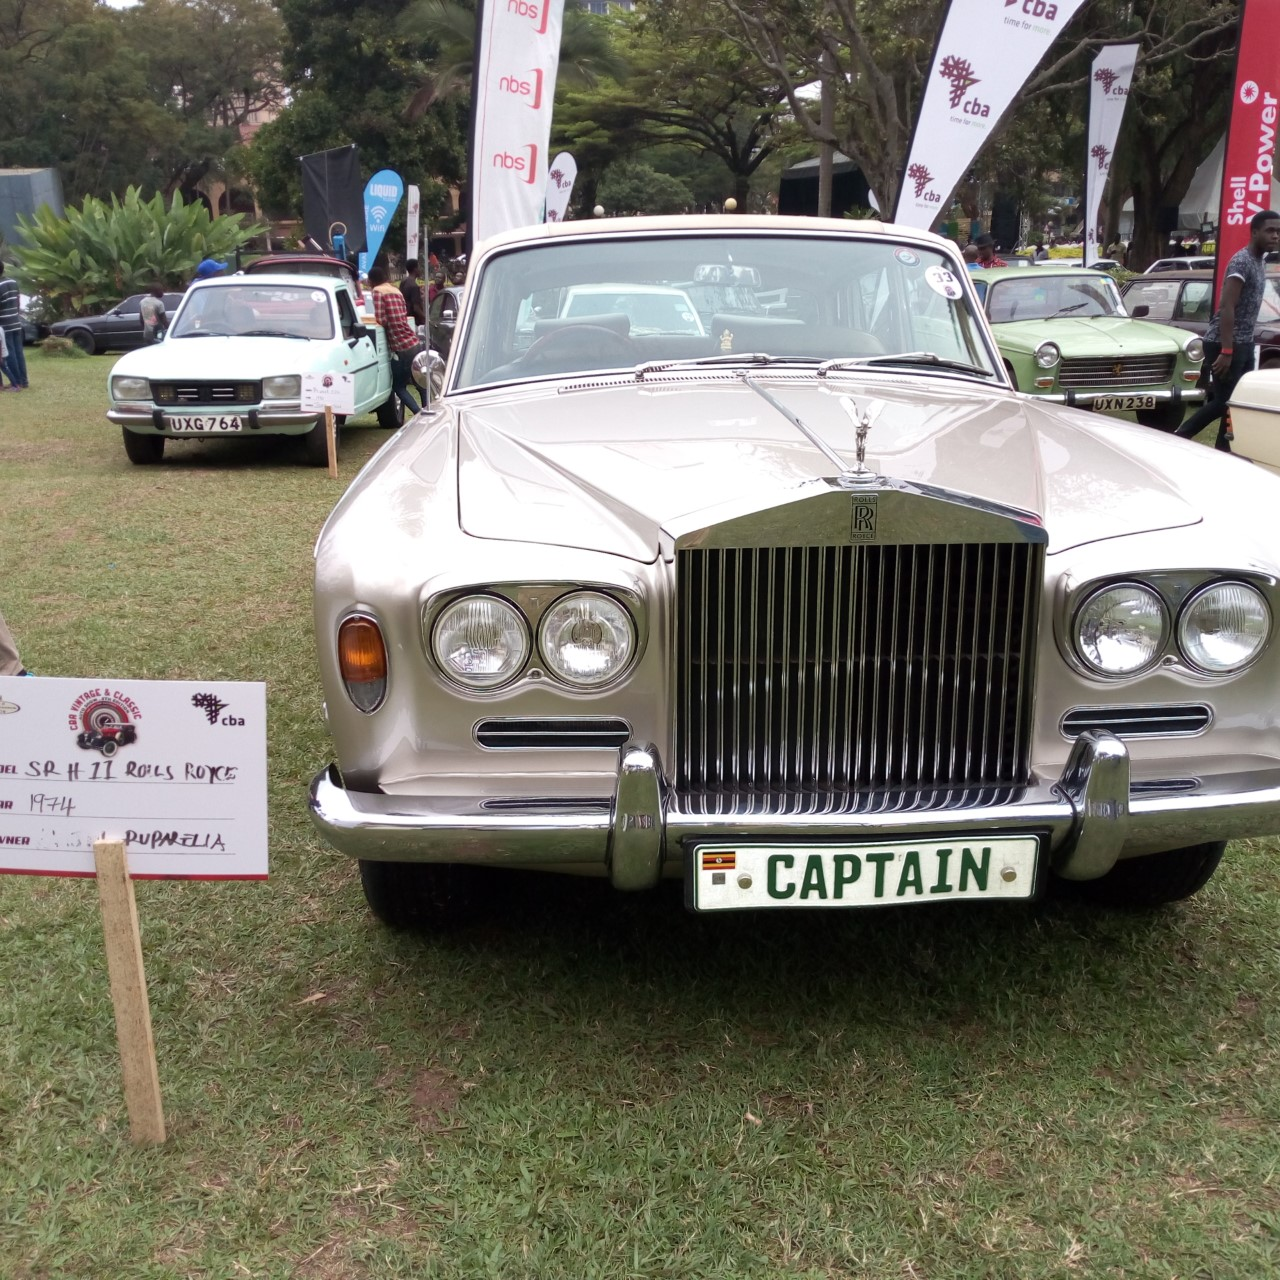 Mr.Rajiv Ruparelia's Rolls Royce, 1974 Model won the 2nd Position at the 8th Auto Vintage  classic show (PHOTO/Abraham Mutalyebwa)